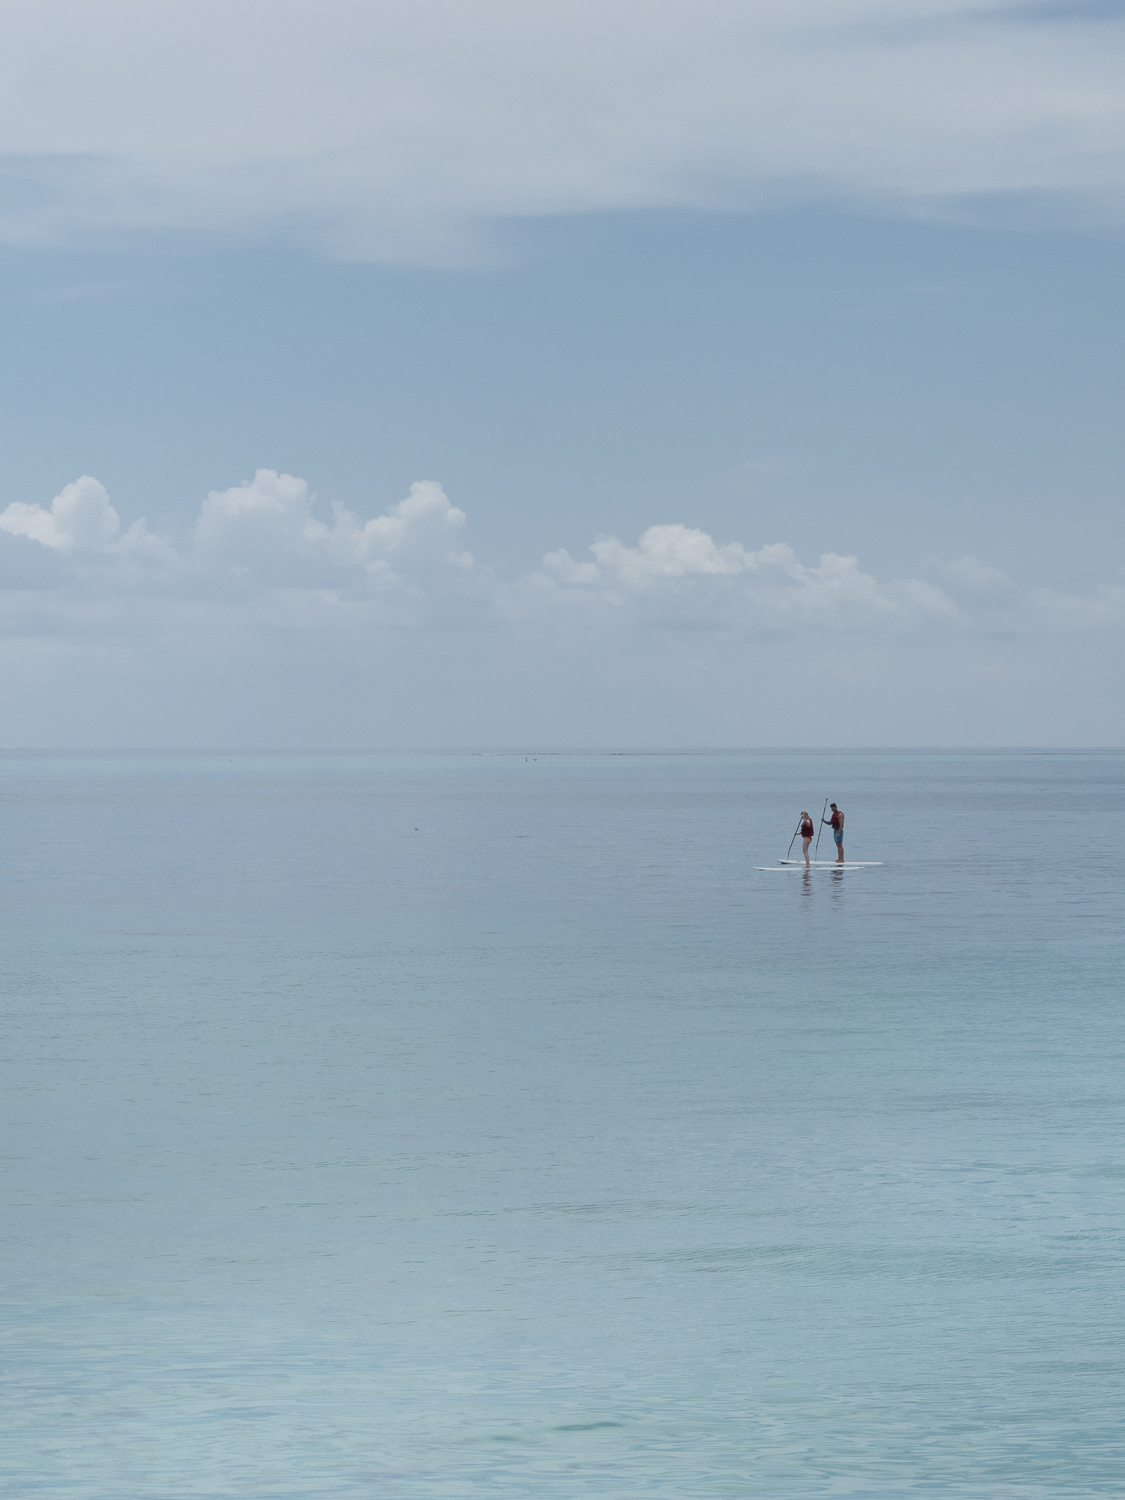 Alexandra-Marie-Interiors-Travel-Photography-Prints-Maldives-Stand-Up-Paddle-boarding-11.jpg